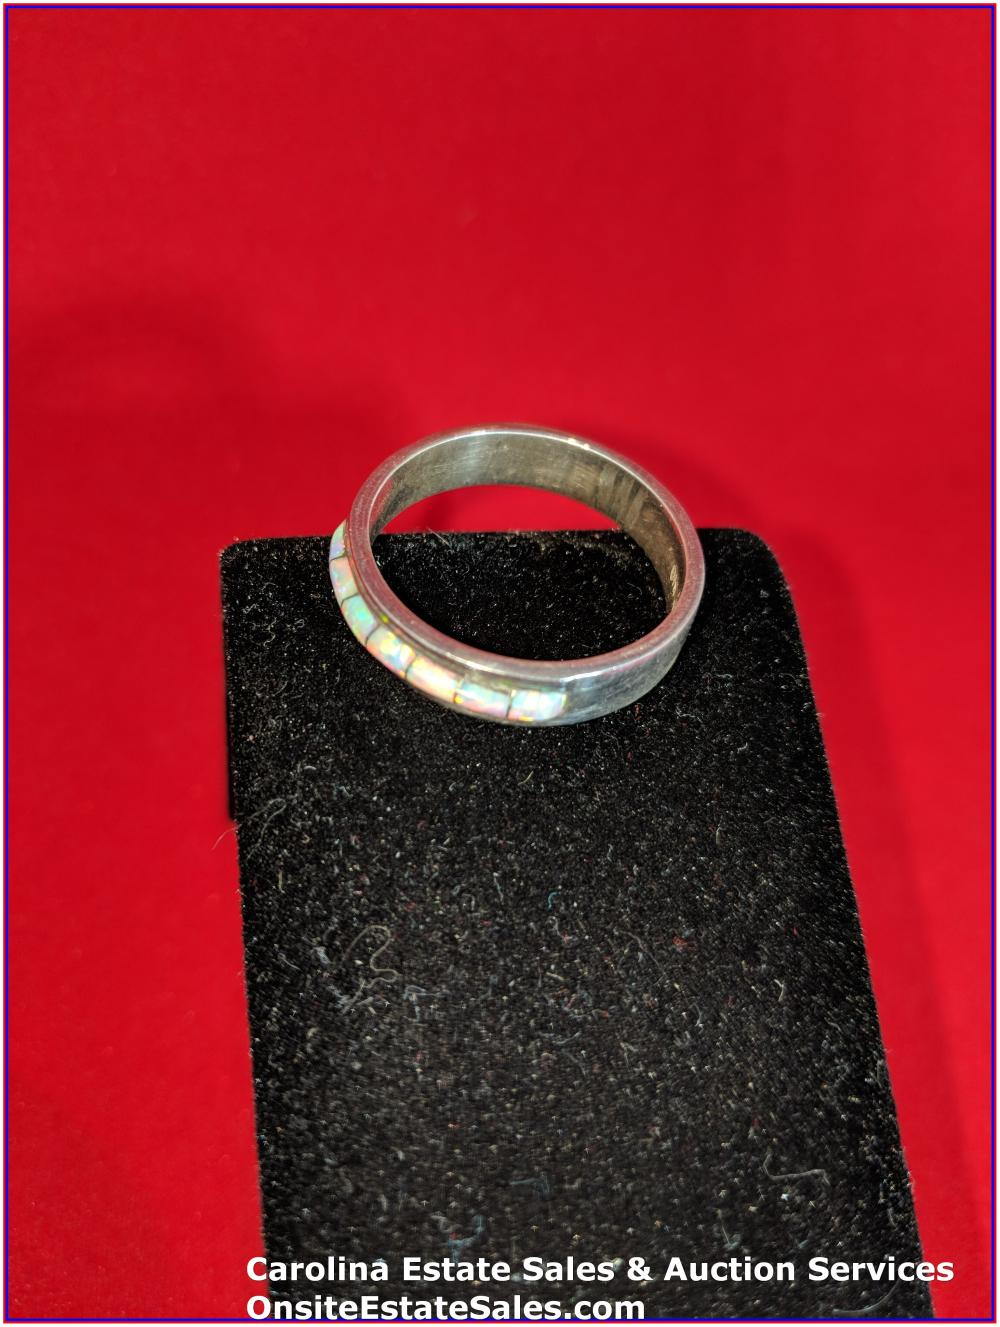 925 Gem Ring Sterling 4 Grams Total Weight Includes Stone